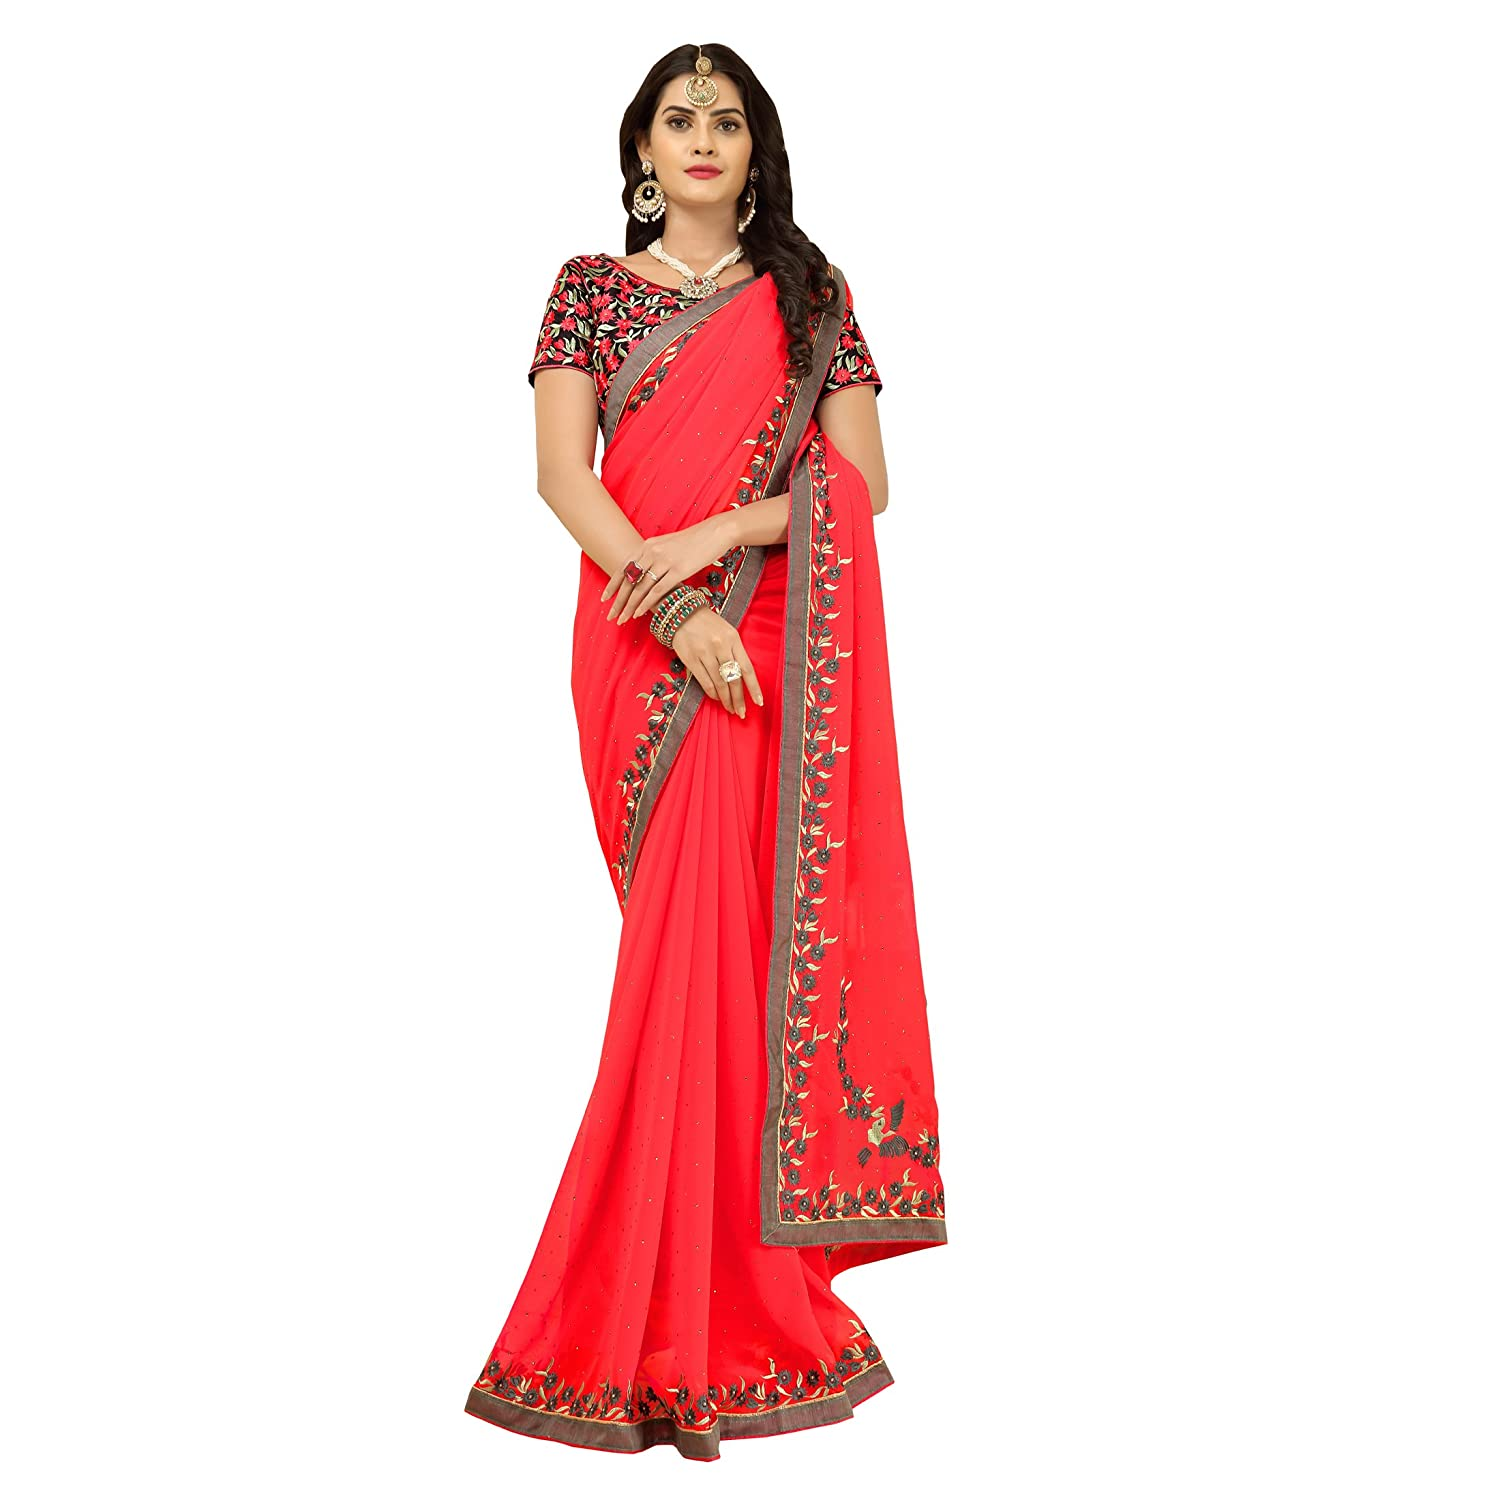 5fdf3f53609e05 Vastrang Sarees Women s Georgette Saree with Blouse Piece (6211PRCH Red)   Amazon.in  Clothing   Accessories